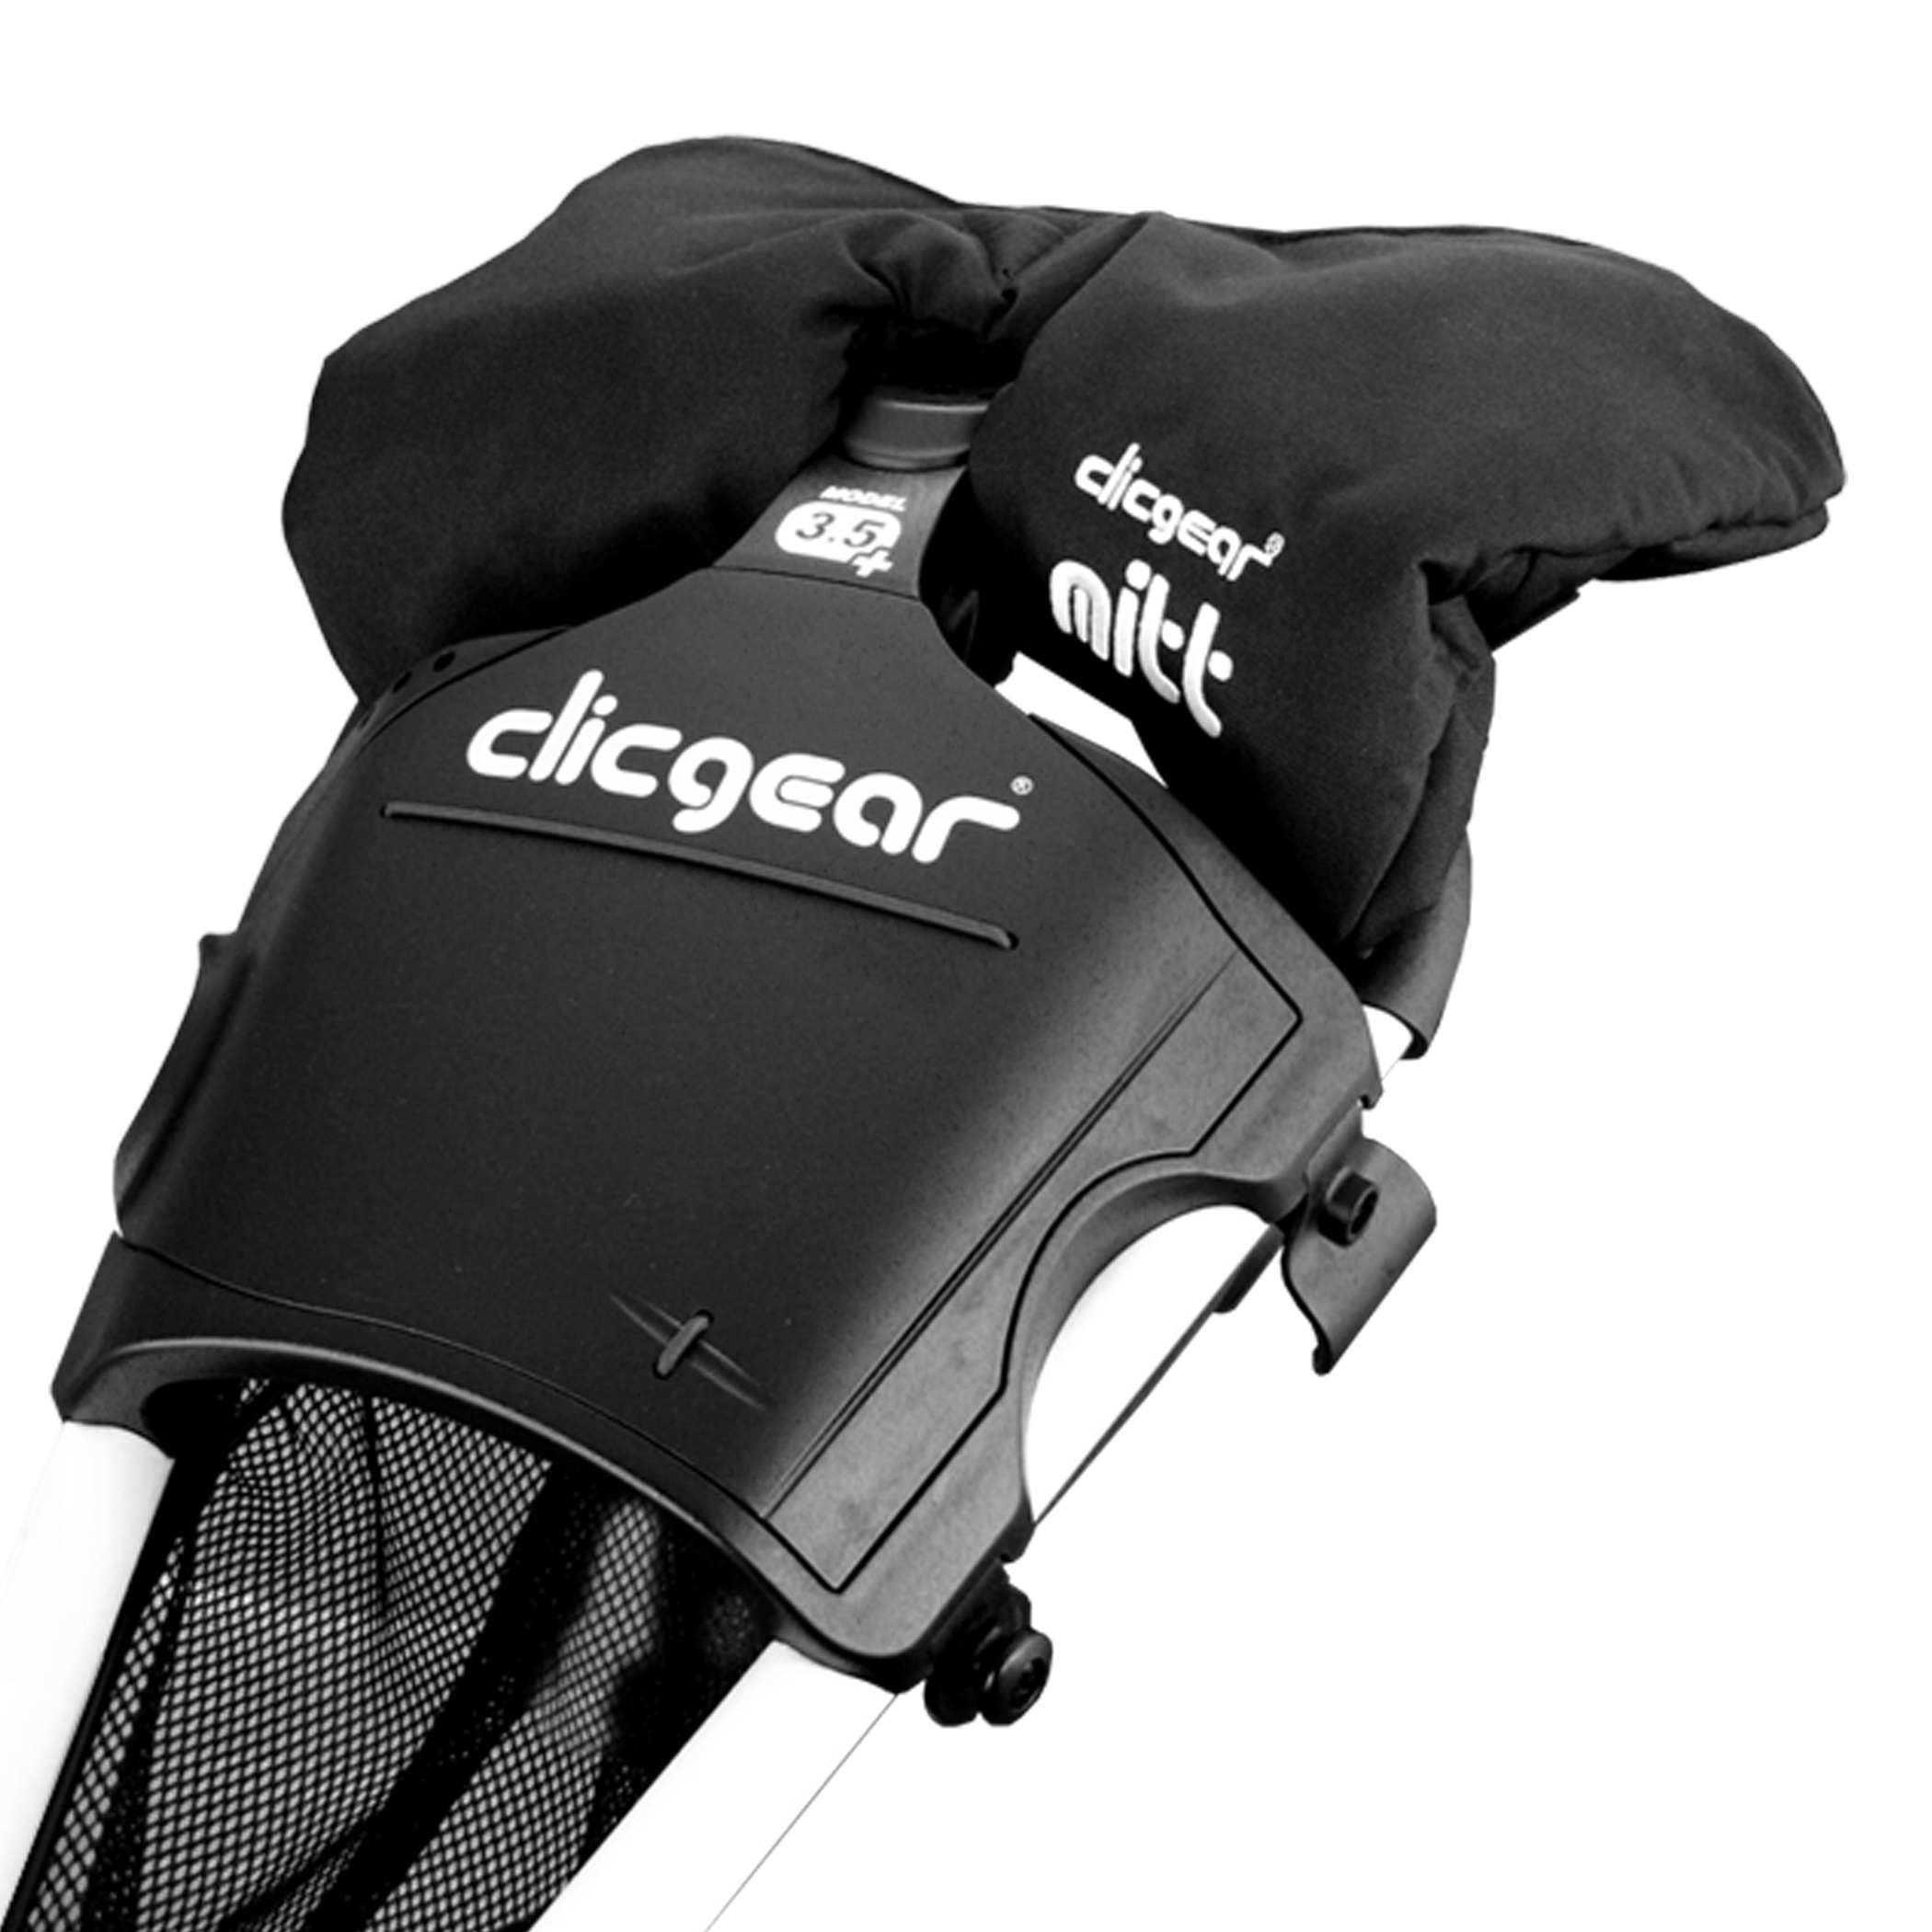 Clicgear Mitts - Waterproof Windproof Mittens for Golf Push Carts